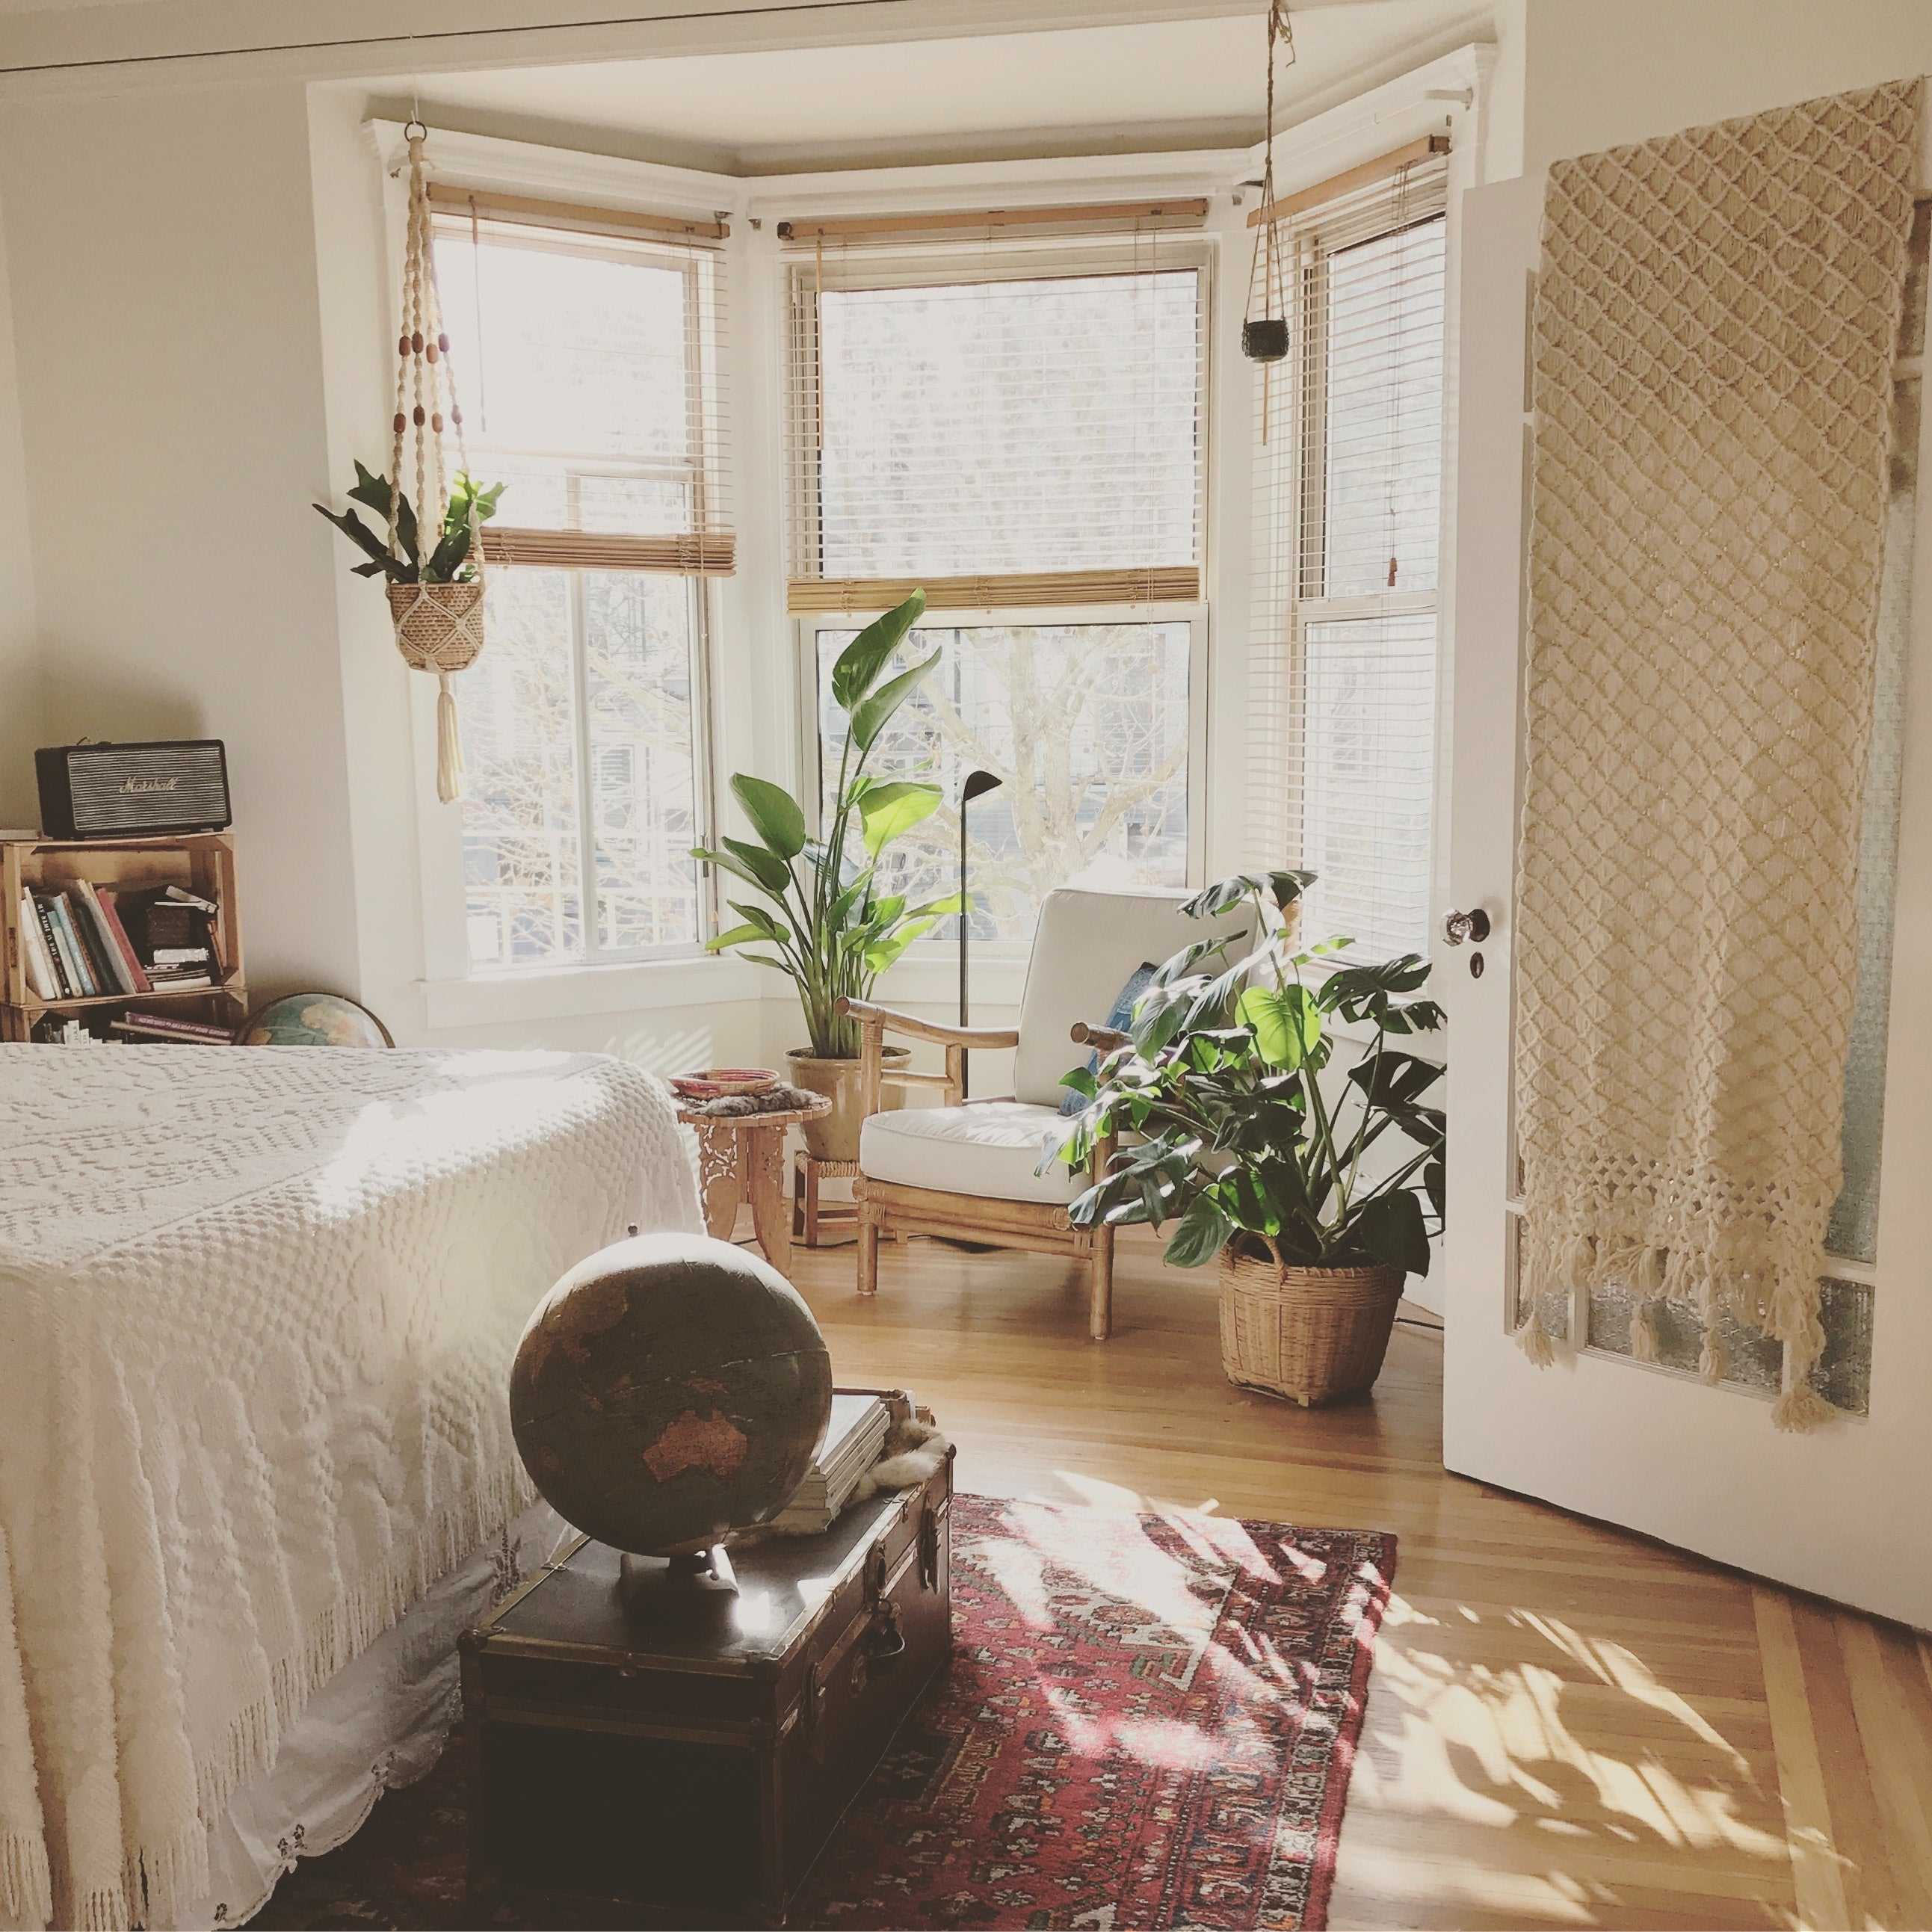 A bedroom with a sunny window and house plants though out it.